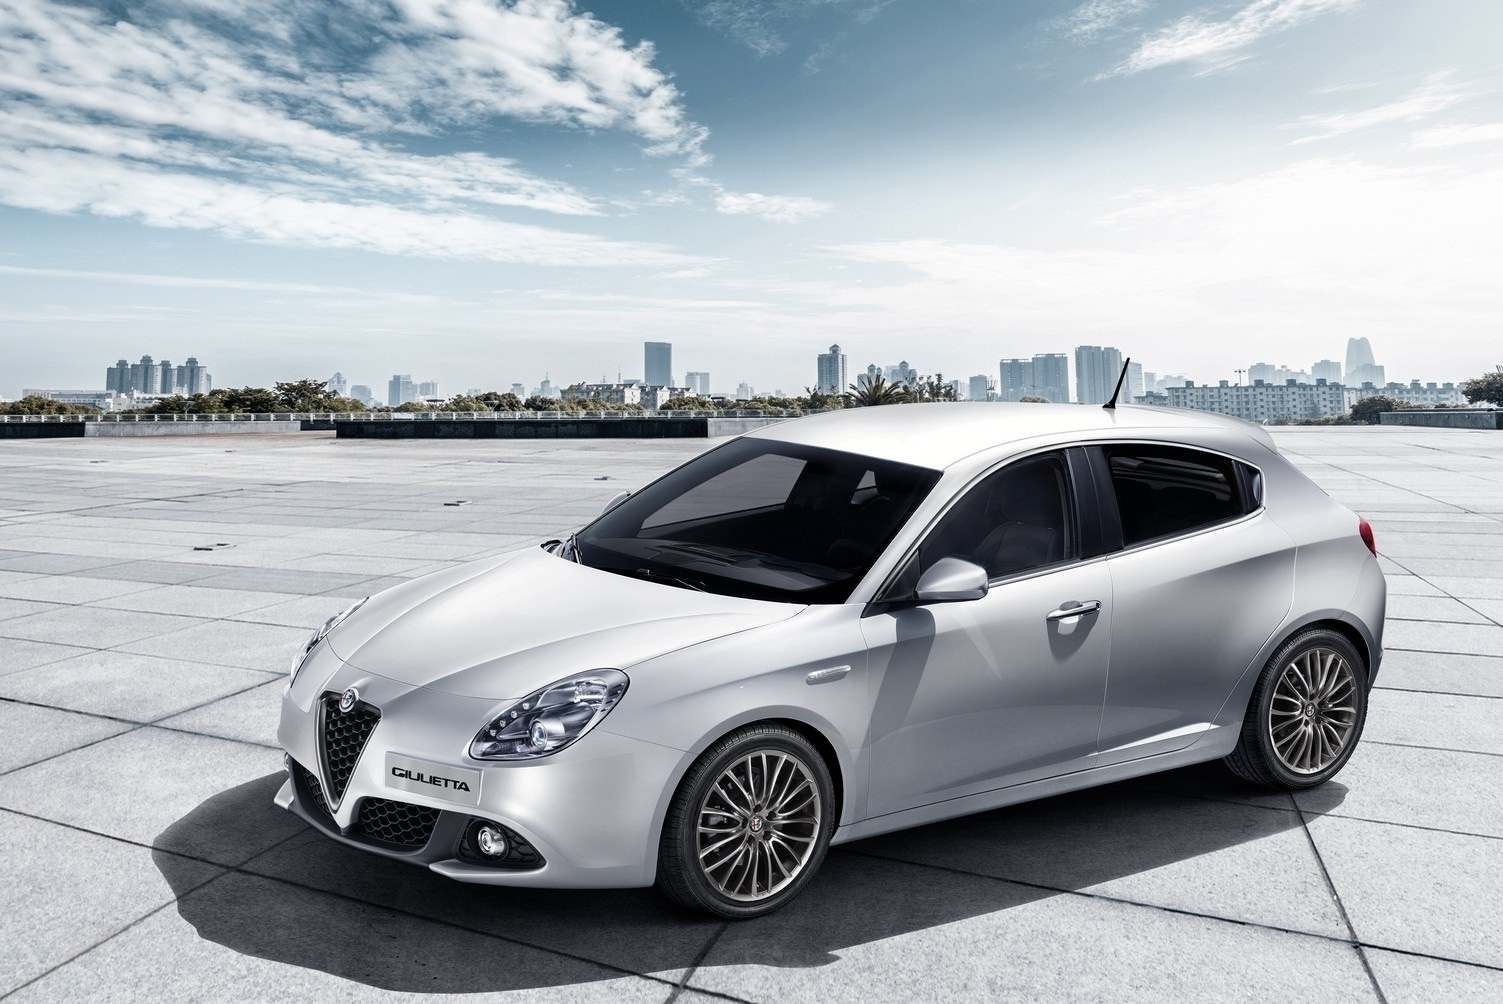 2016 alfa romeo giulietta may s ay fiyatlar uygun ta t. Black Bedroom Furniture Sets. Home Design Ideas